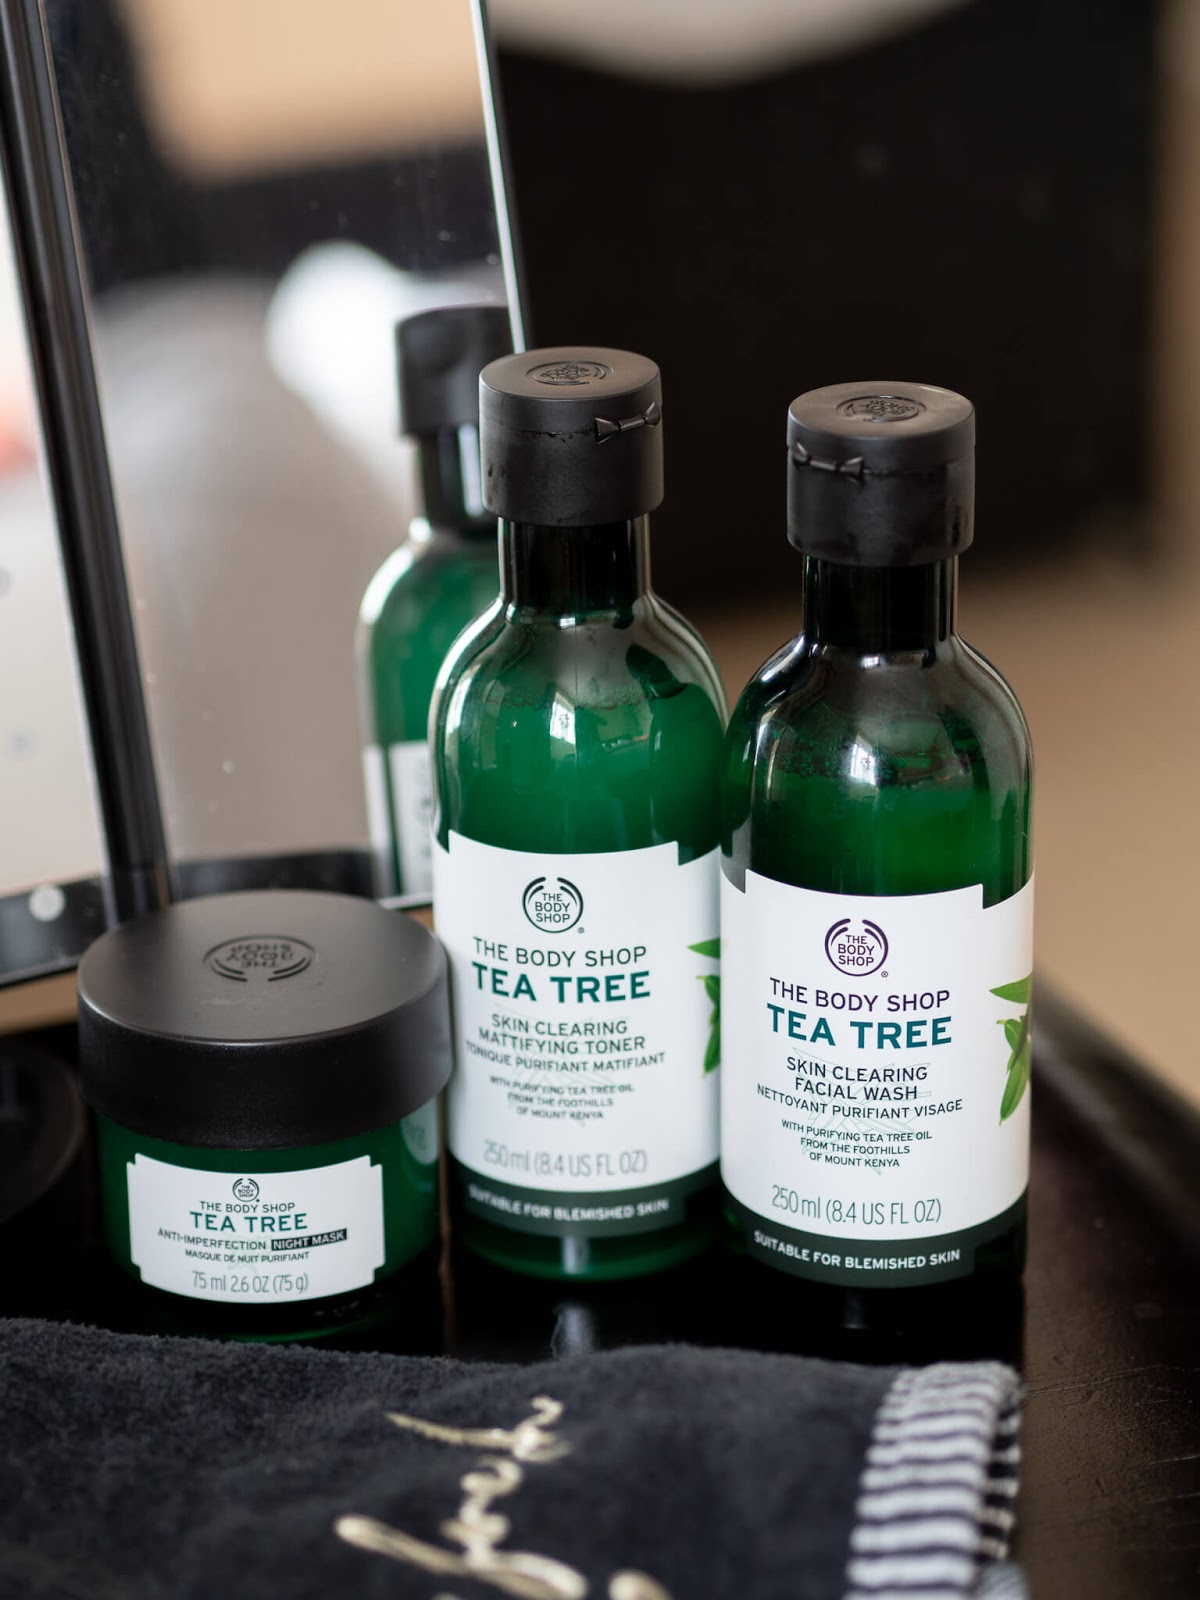 Tea Tree products for acne & blemishes